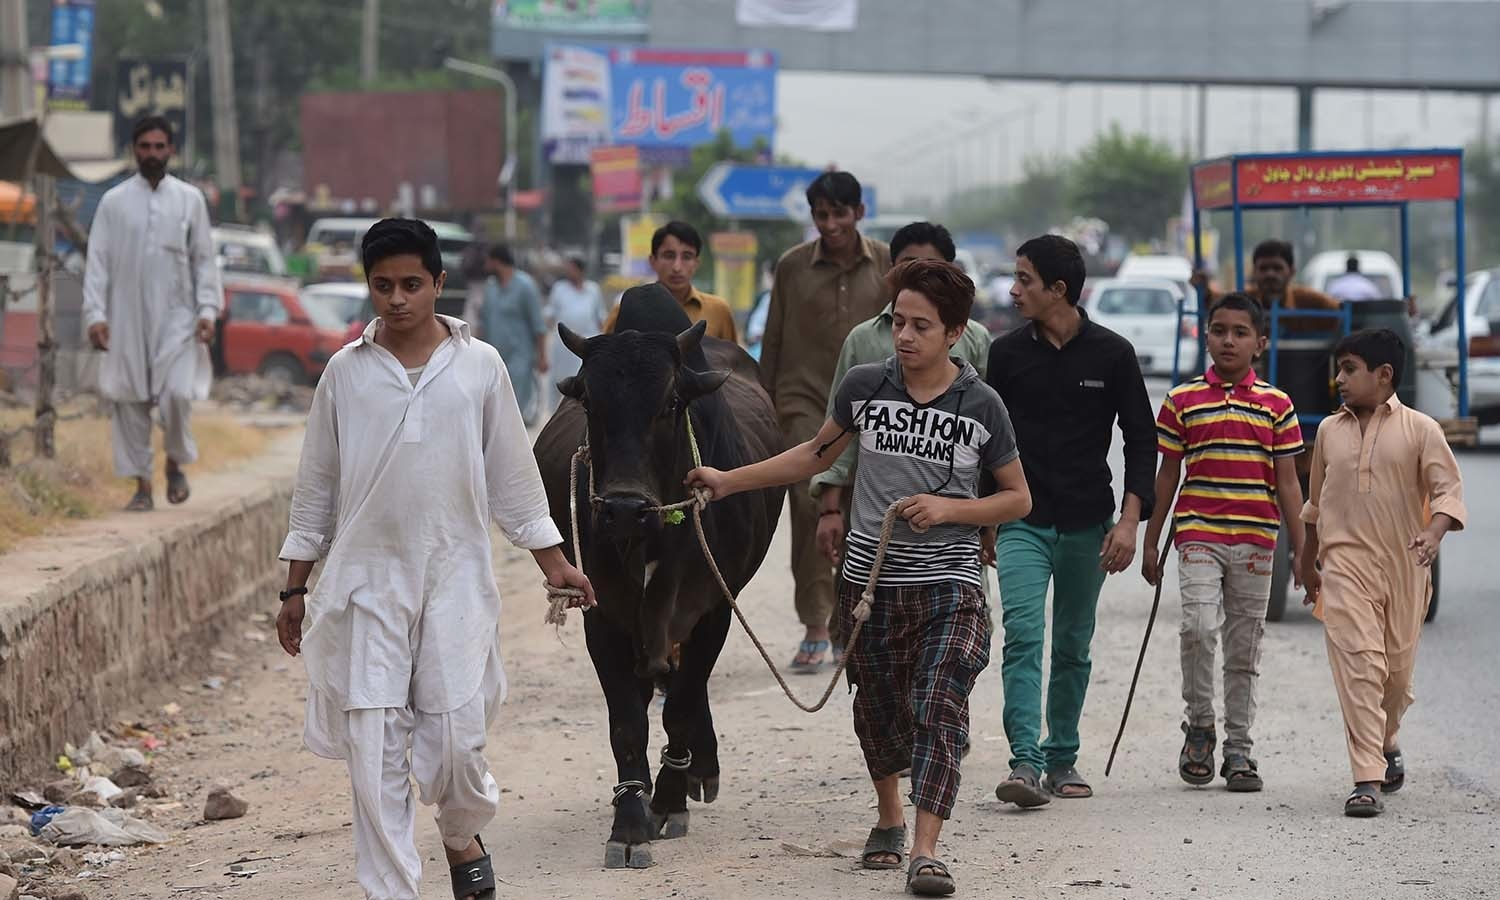 Youth lead a cow through the streets of Rawalpindi. — AFP